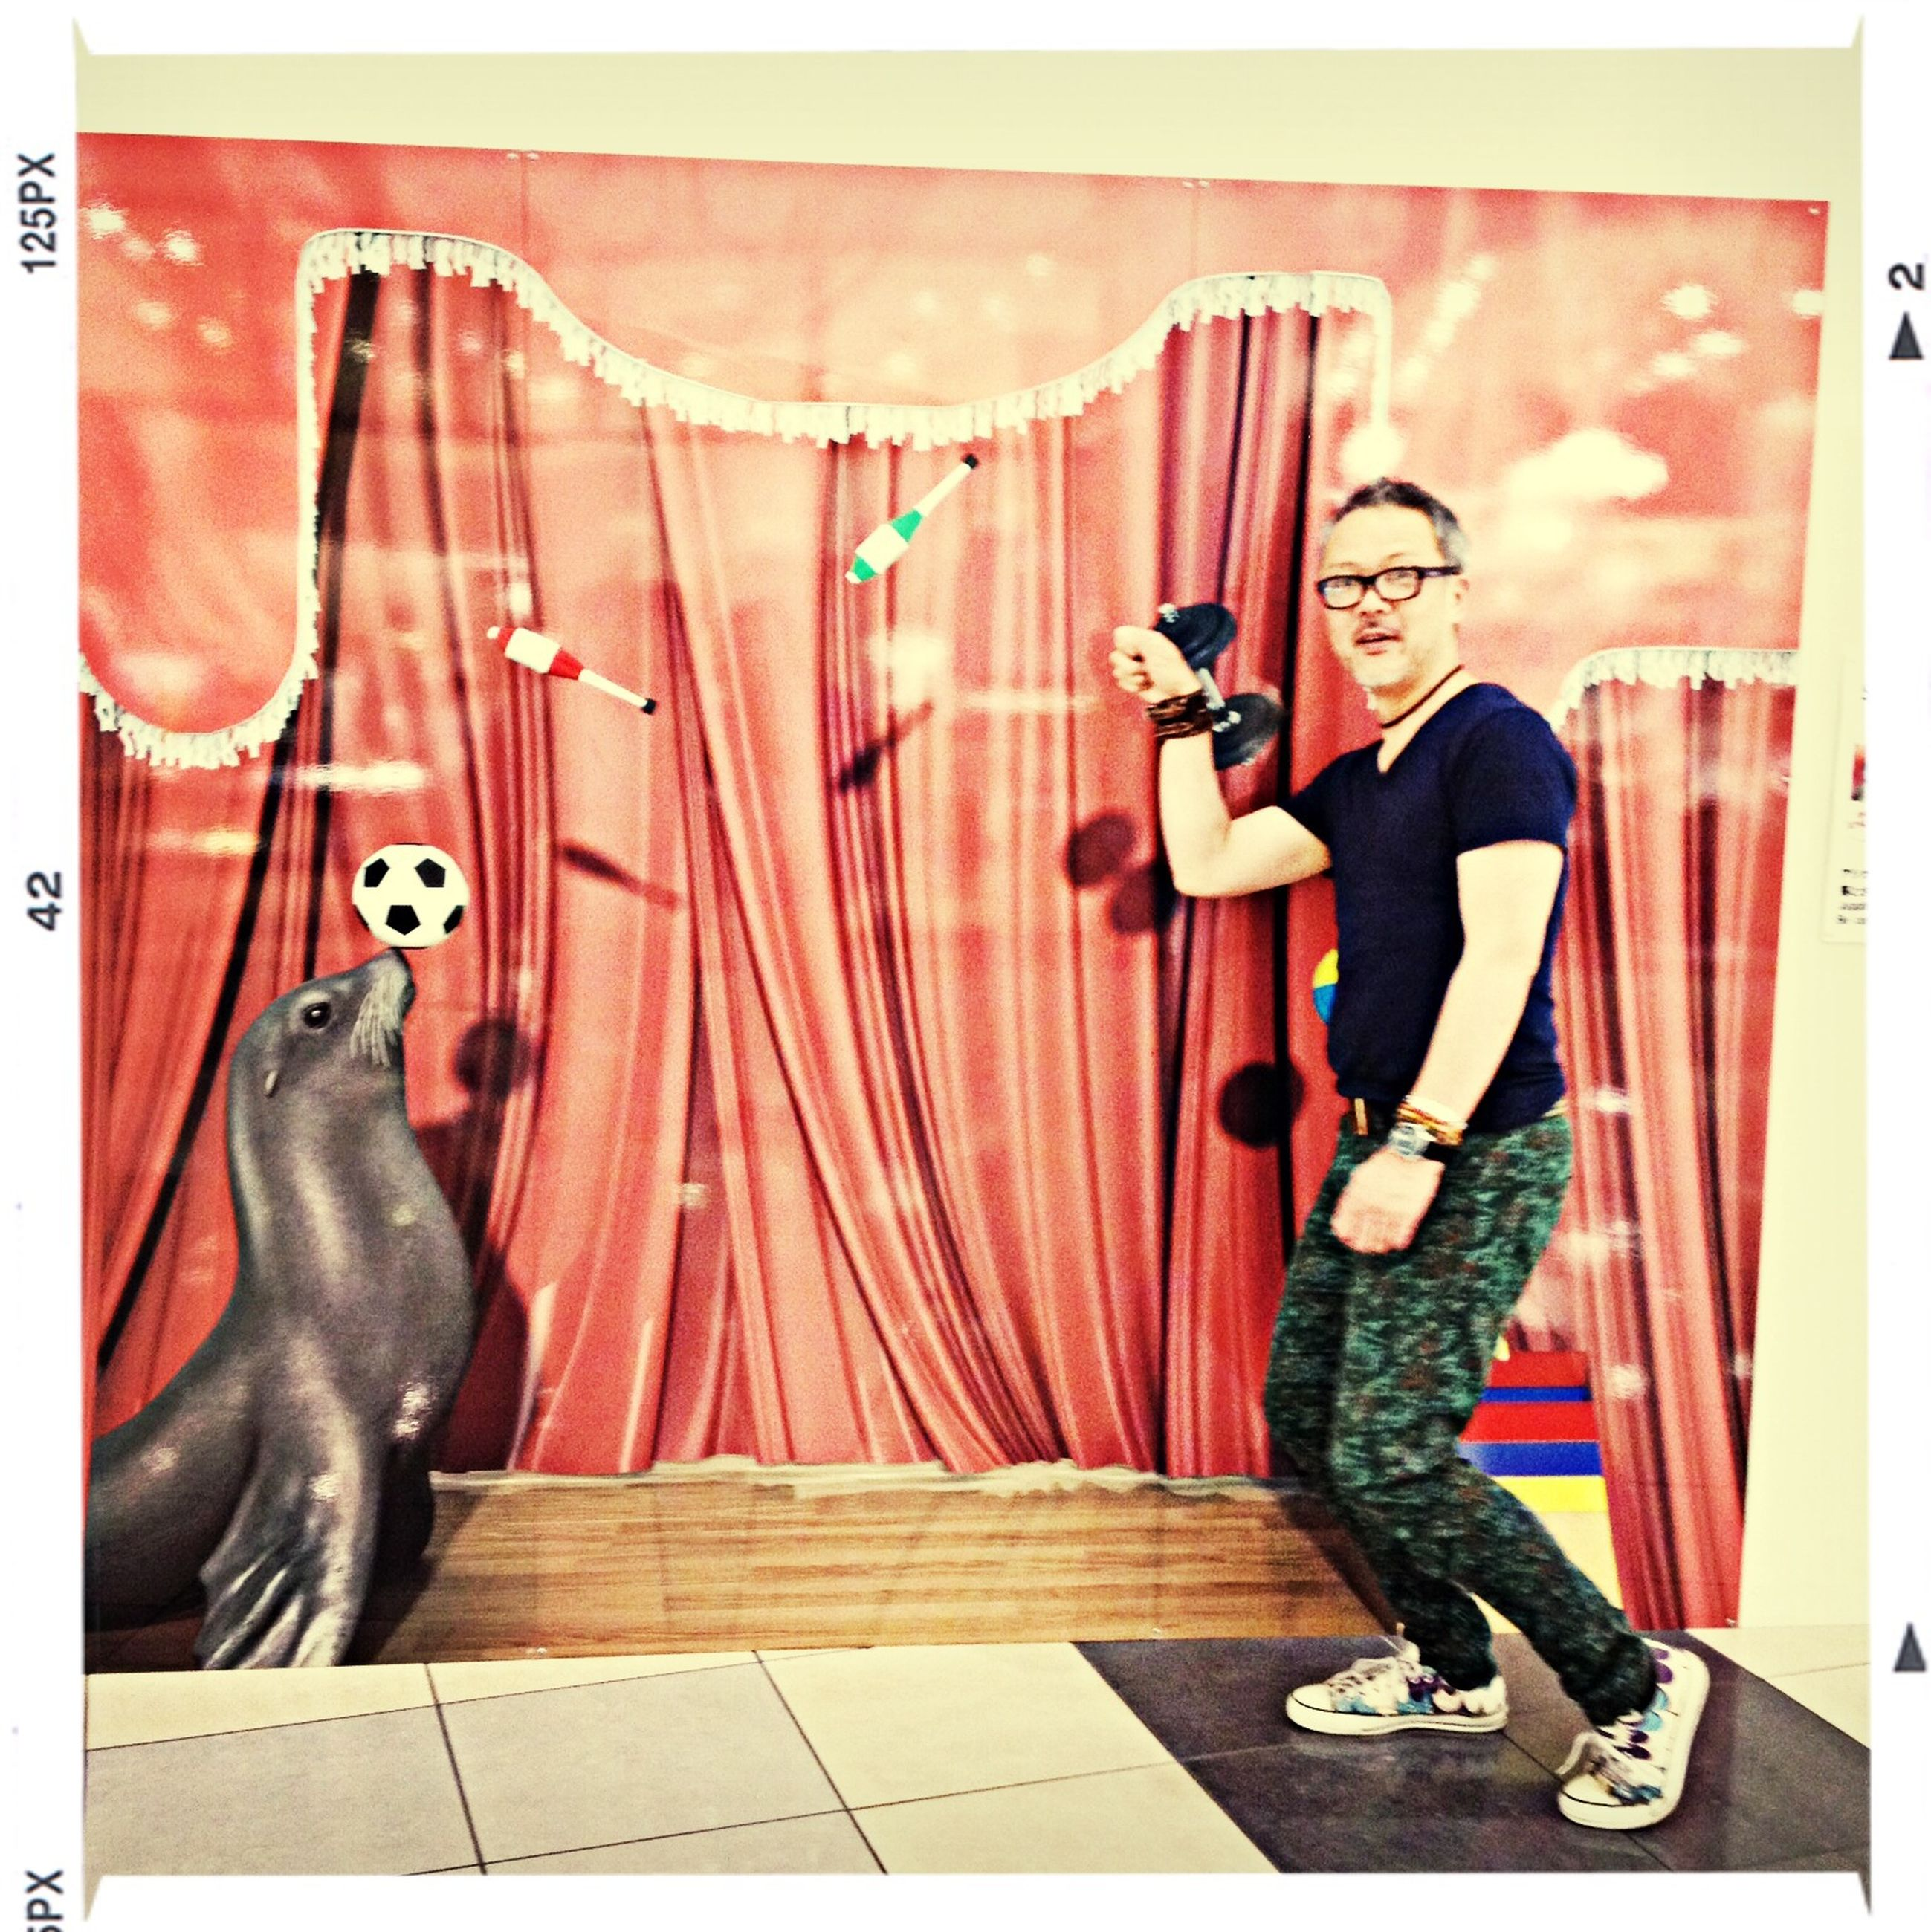 transfer print, auto post production filter, indoors, full length, animal representation, art and craft, human representation, wall - building feature, art, creativity, wood - material, door, standing, shoe, day, red, lifestyles